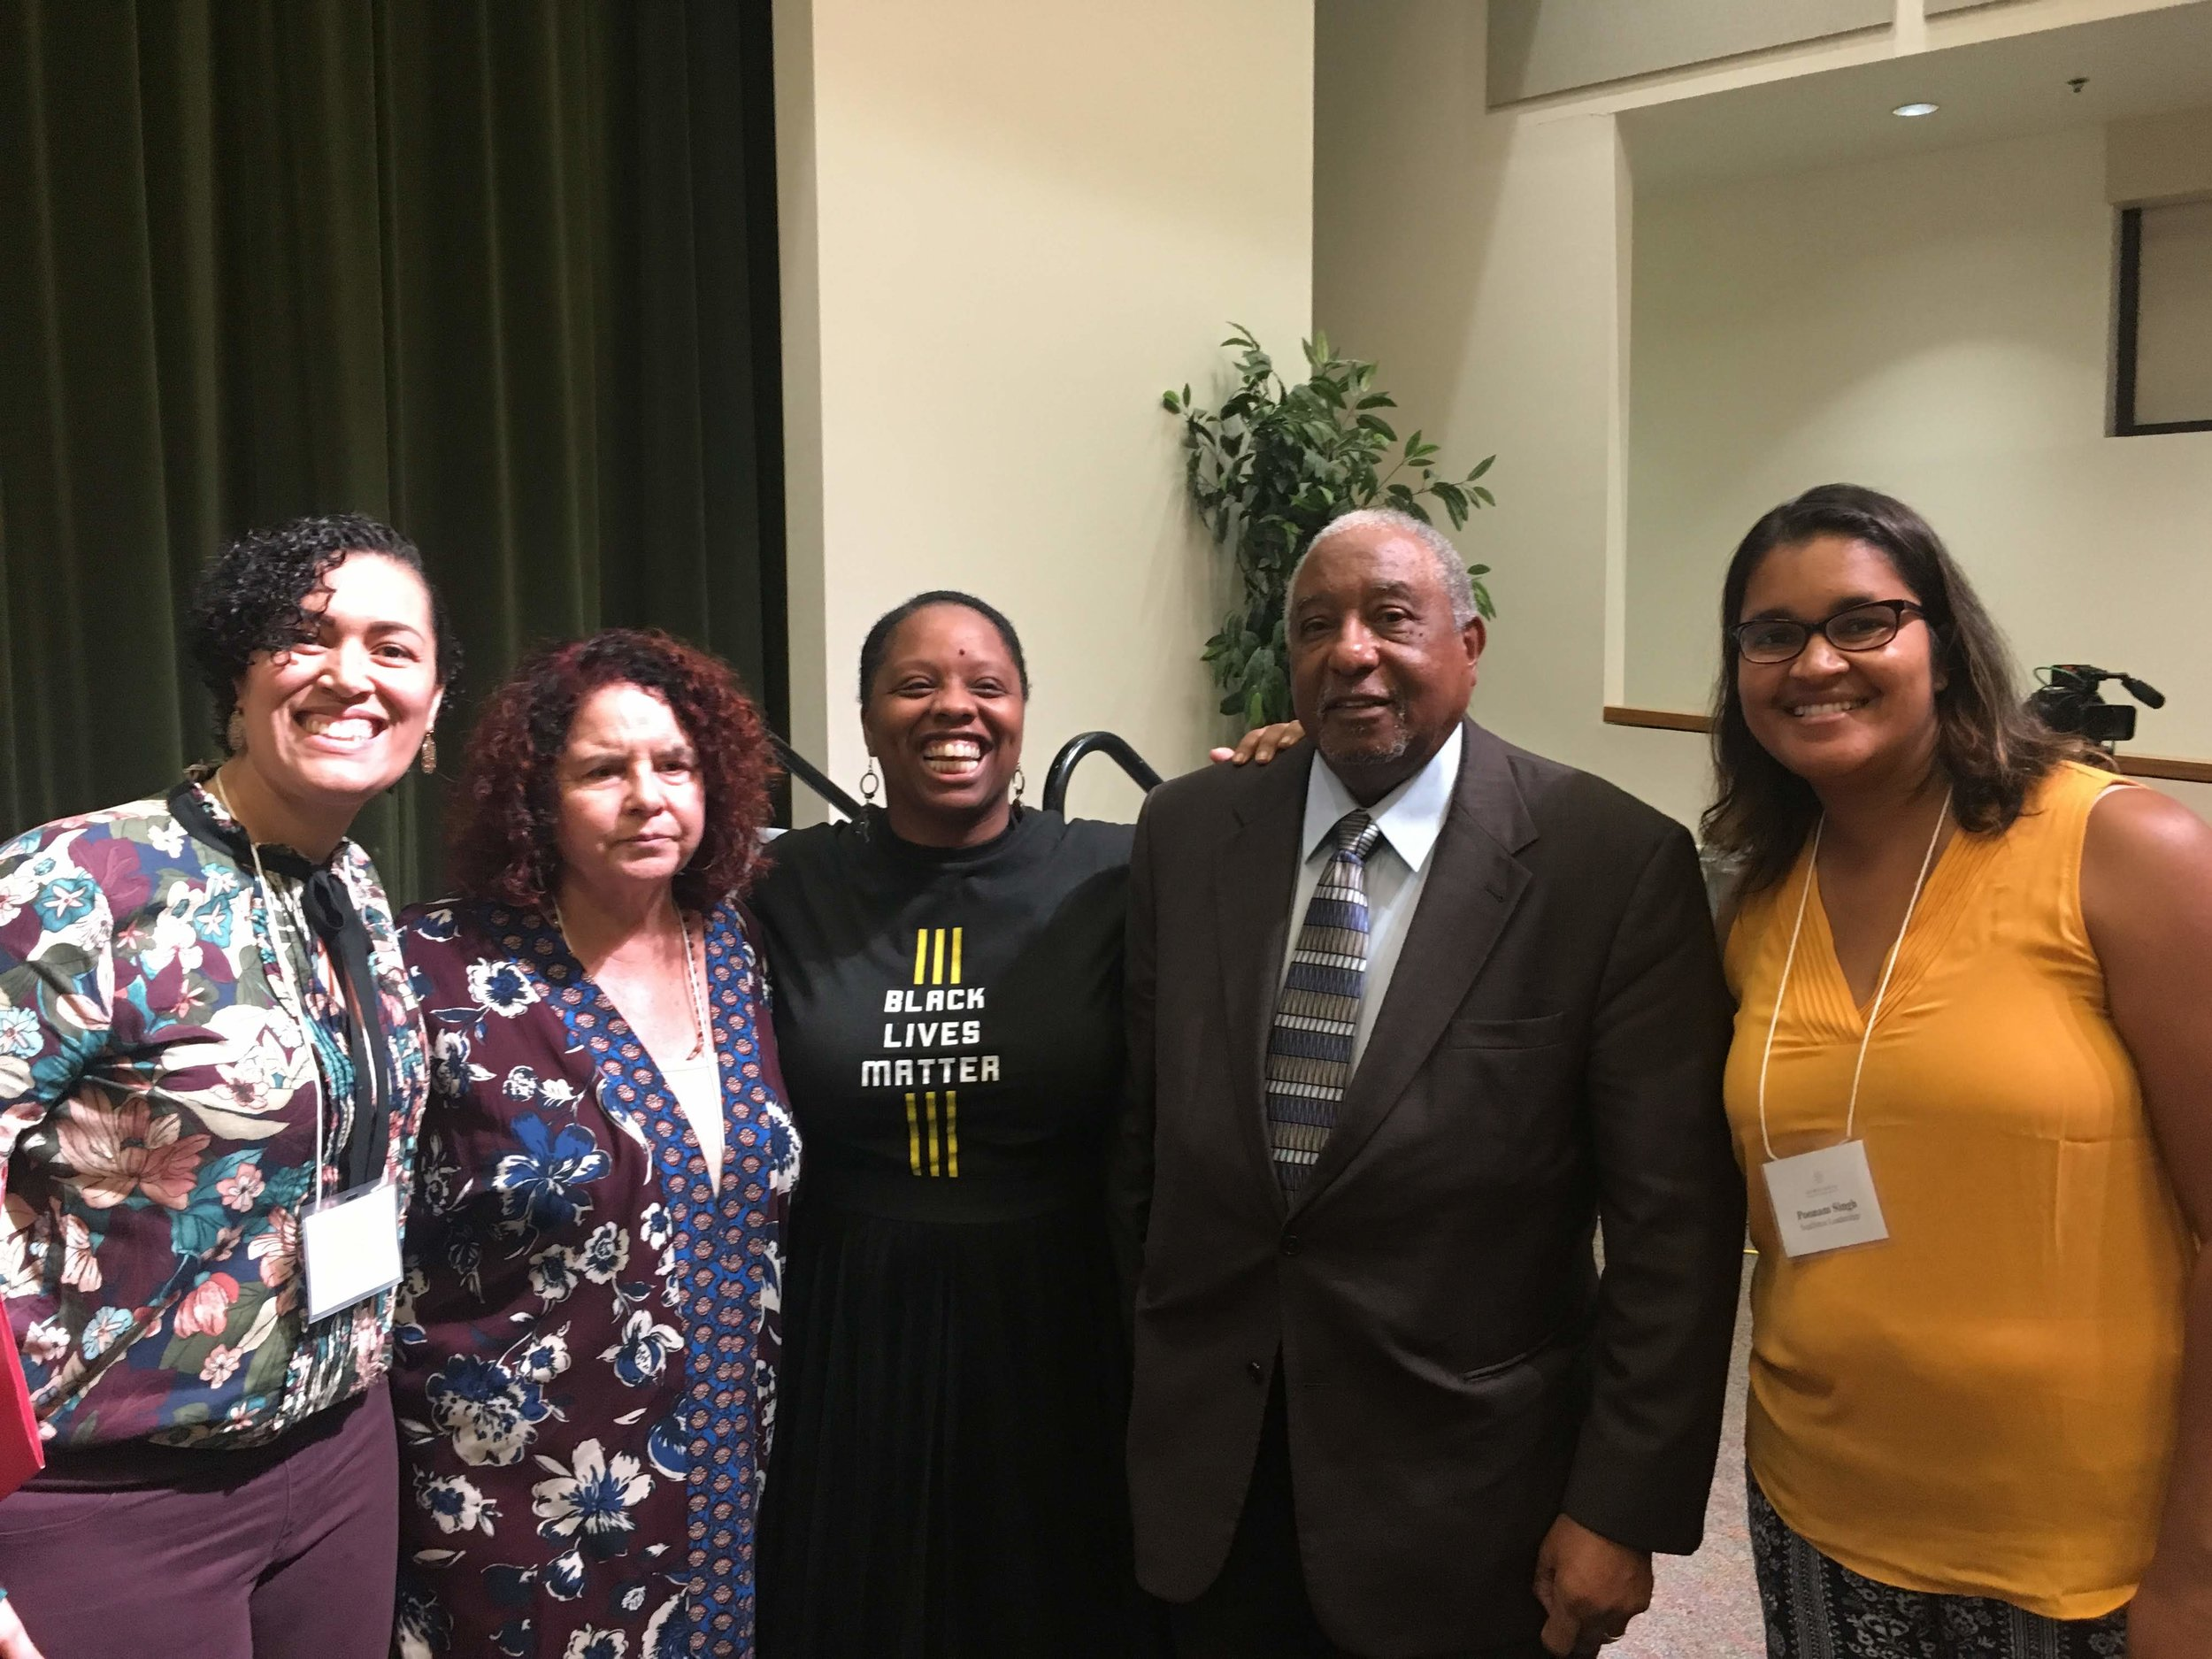 At the Ahimsa Conference 2018 with Bernard Lafayette & Black Lives Matter Organizer Patrisse Cullors.